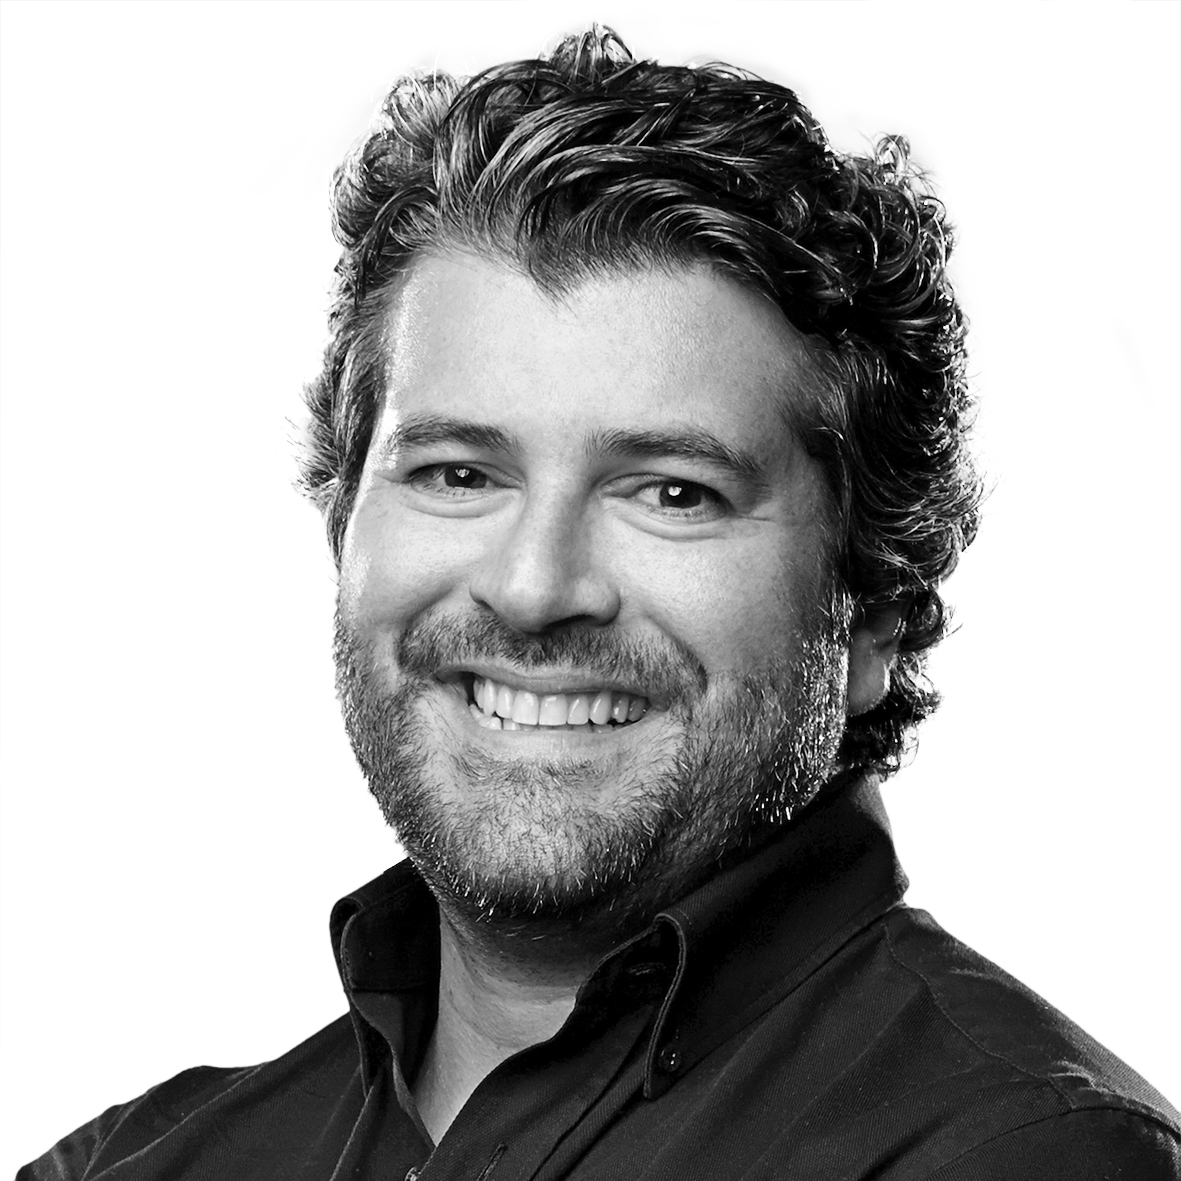 Bestads Six of the Best Reviewed by Alvaro Rodrigues, CCO and CEO at Fullpack, Brazil